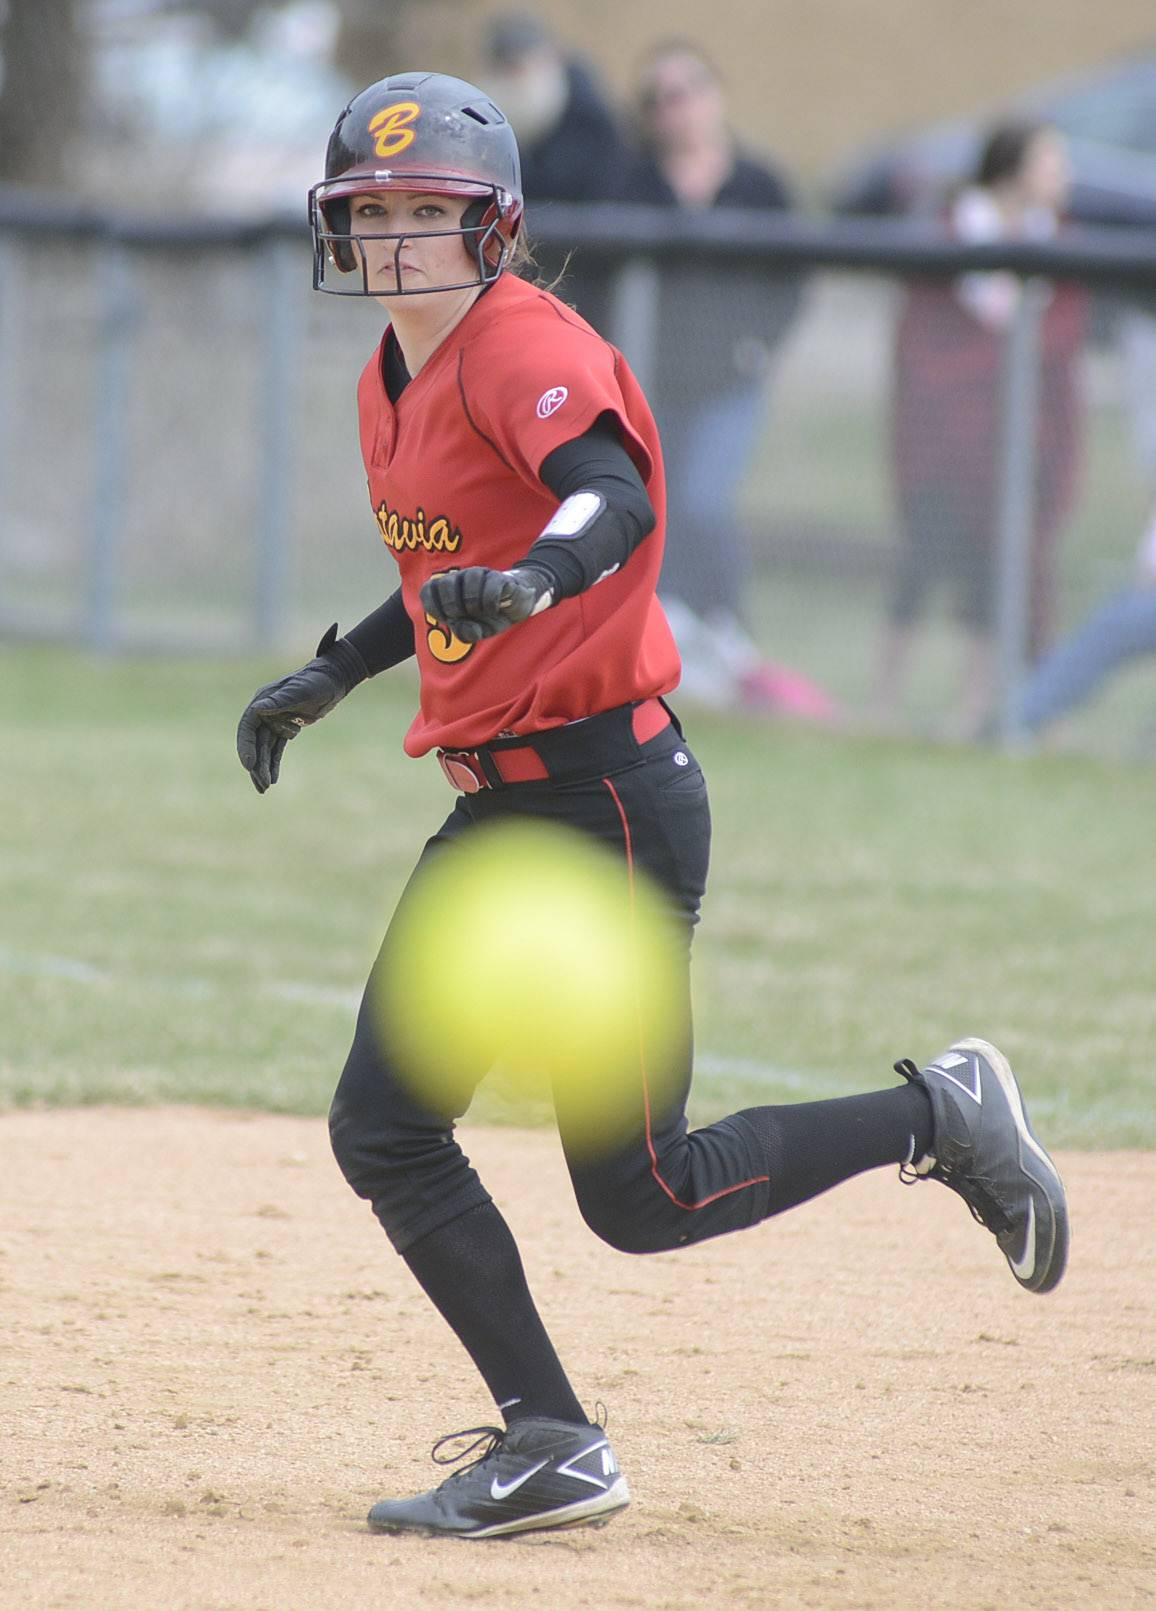 Batavia's Nicole Peercy makes a break for second base as the ball is pitched in the fourth inning on Saturday.